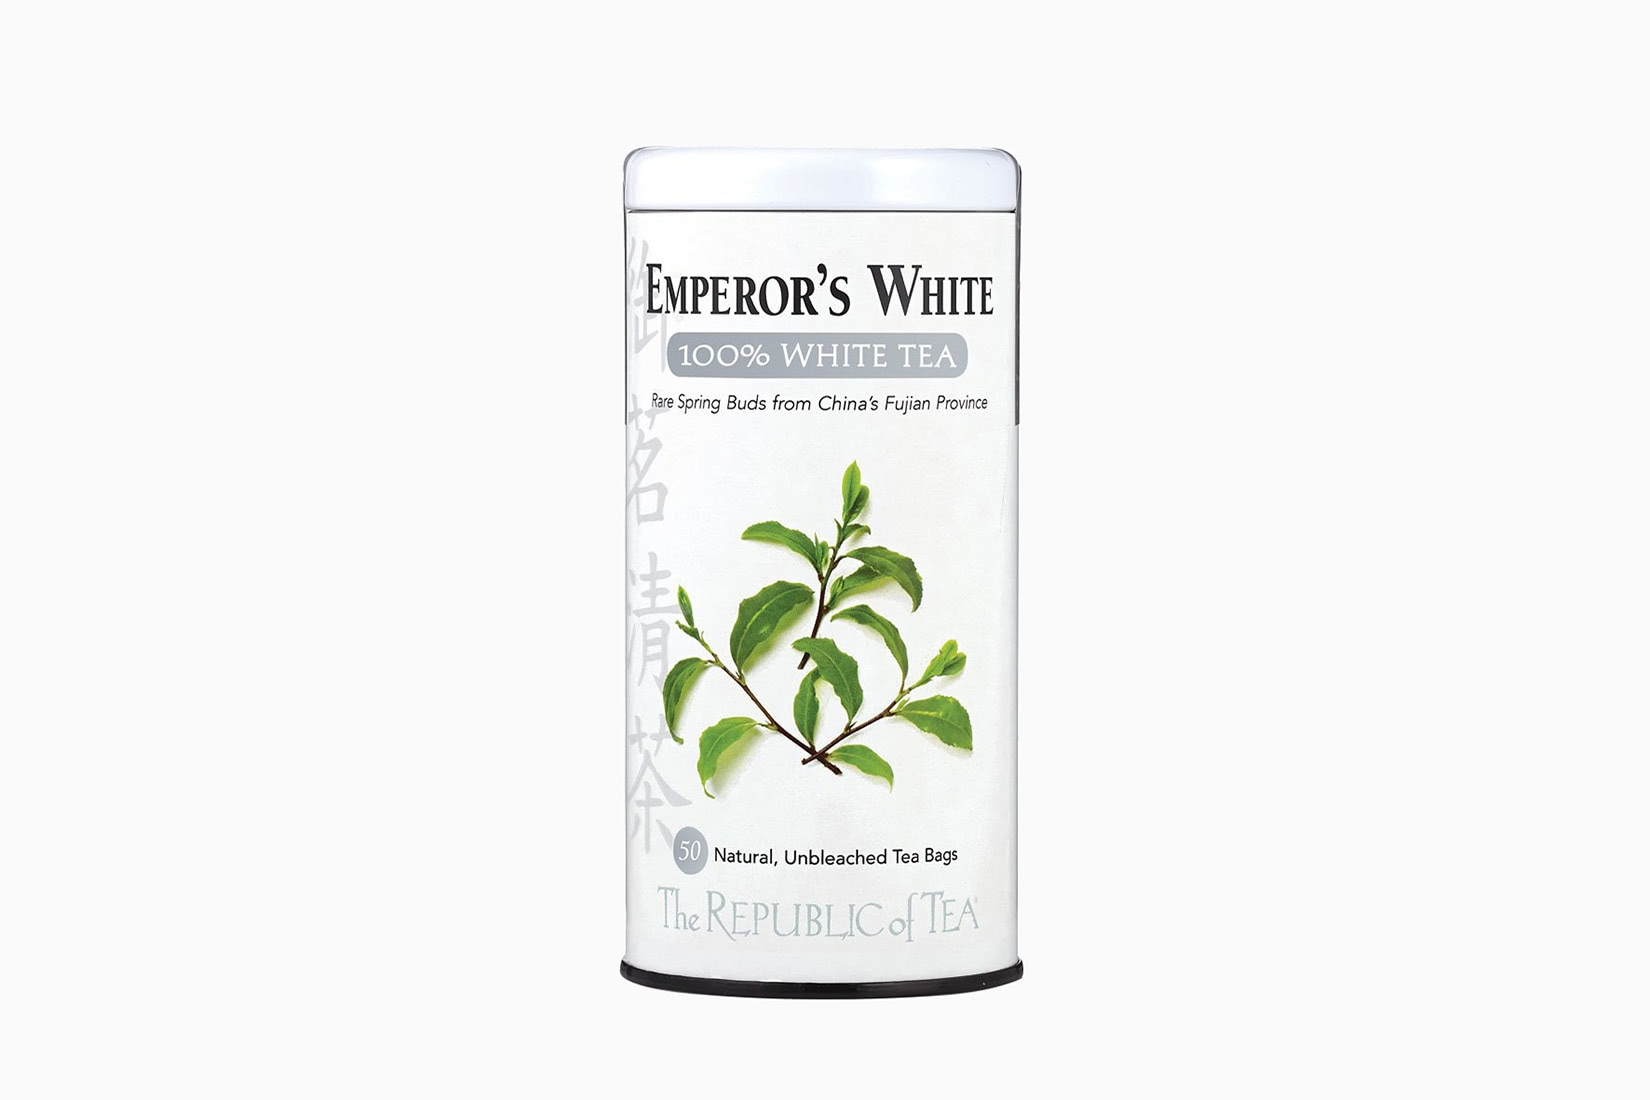 best tea brands white emperor - Luxe Digital